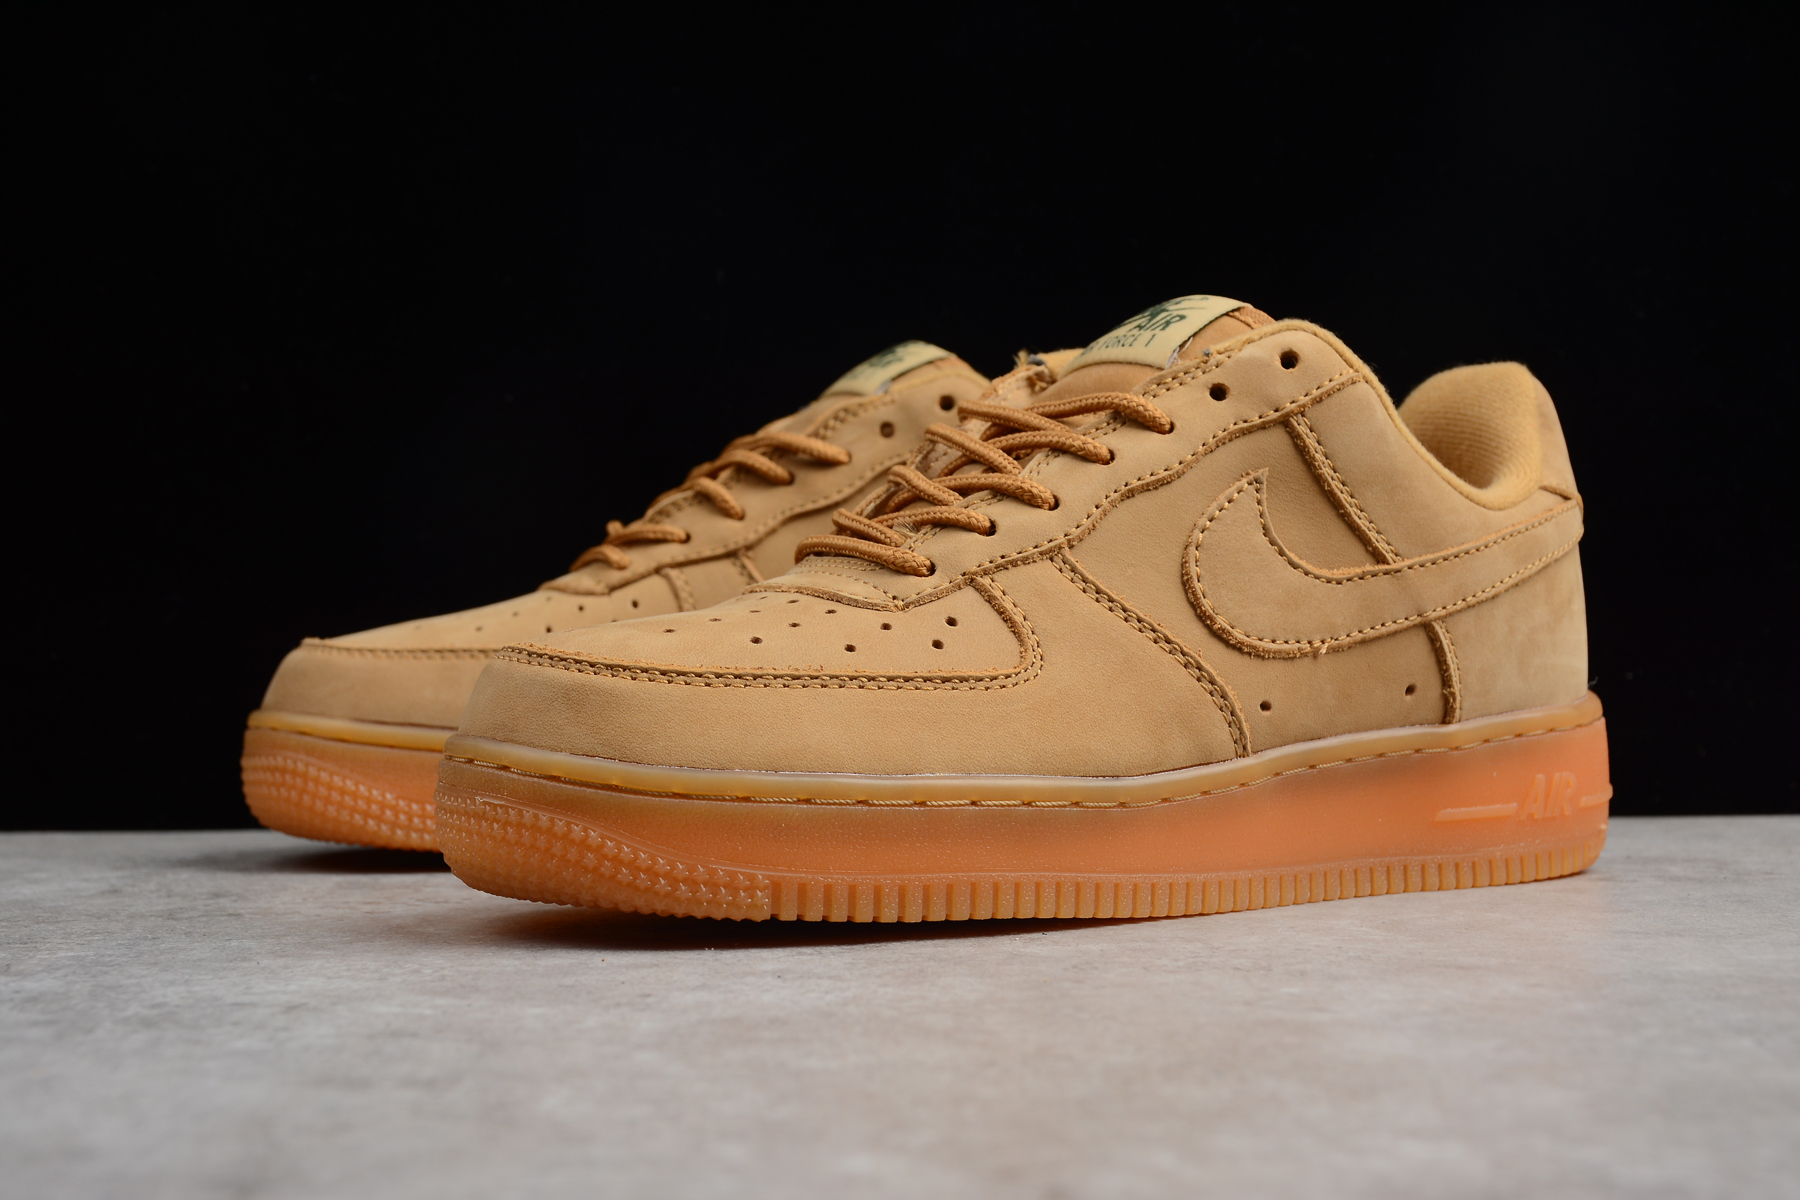 Latest Nike WMNS Air Force 1 Low Wheat Flax Flax